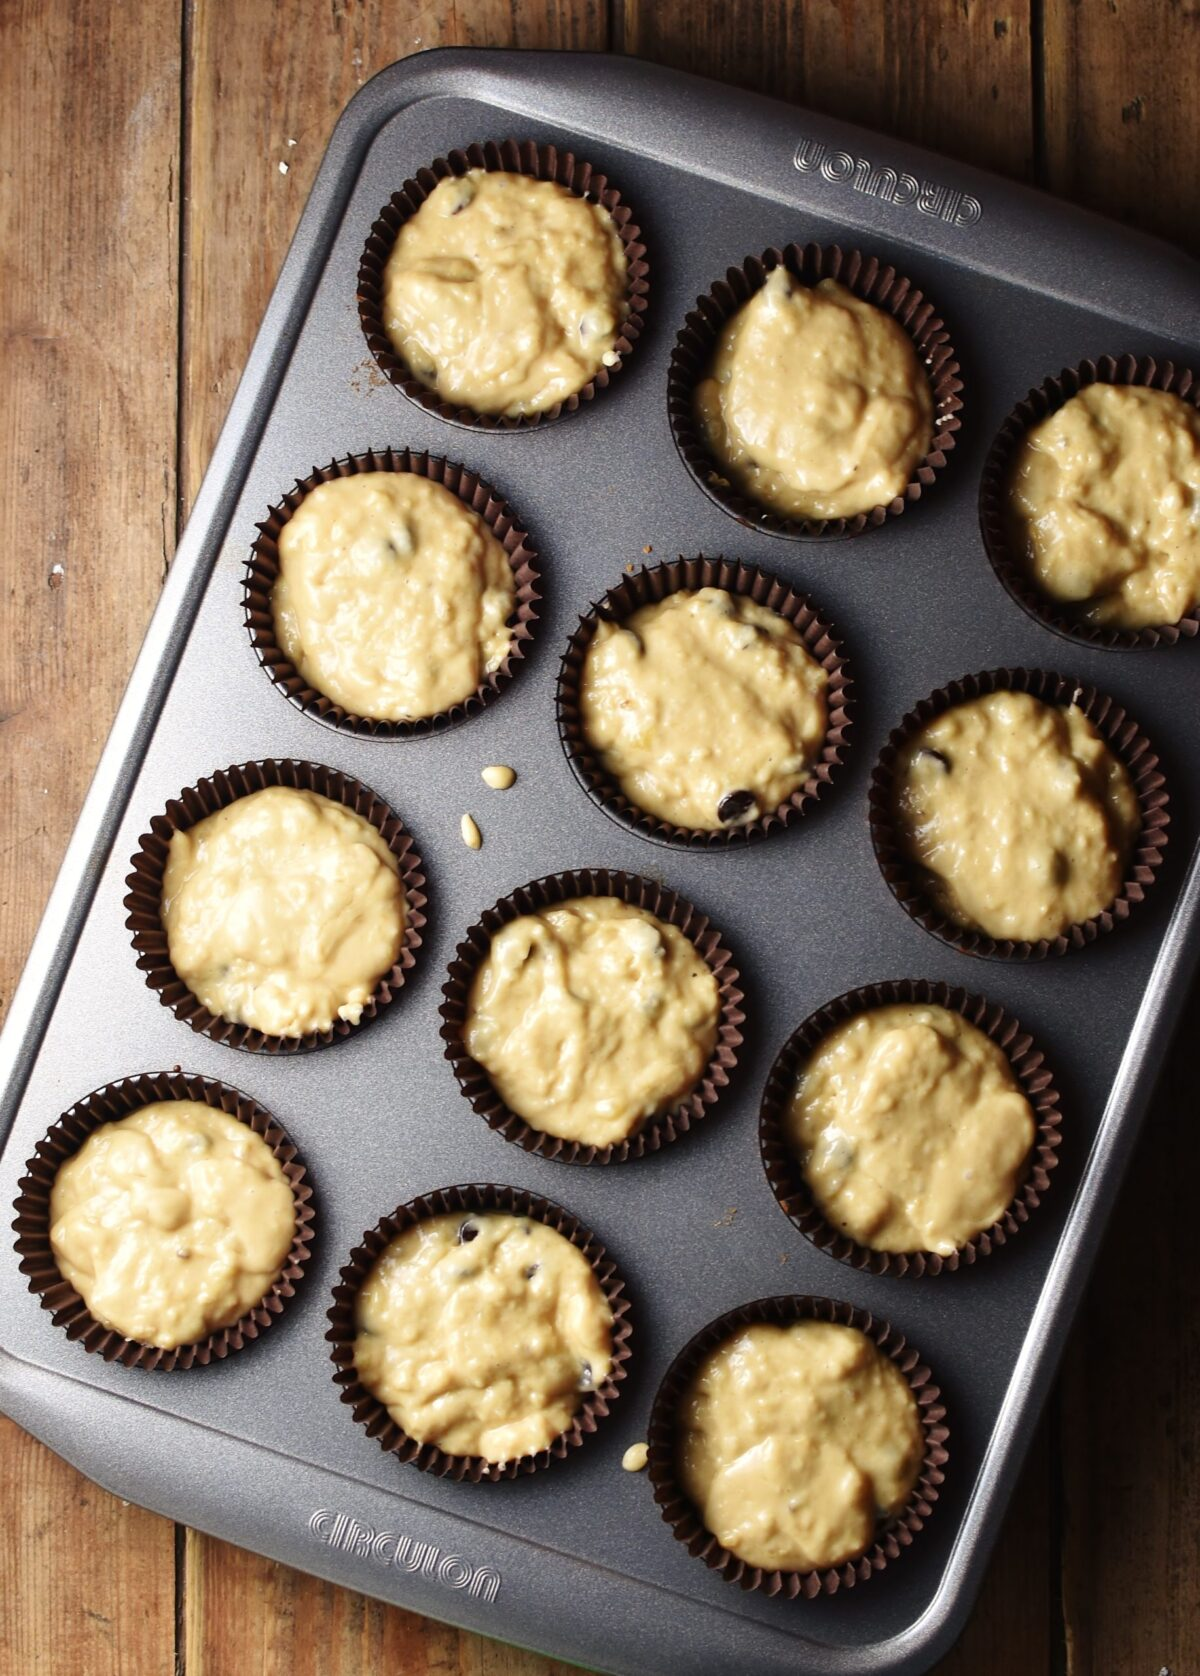 Unbaked muffins in 12-hole muffin pan.